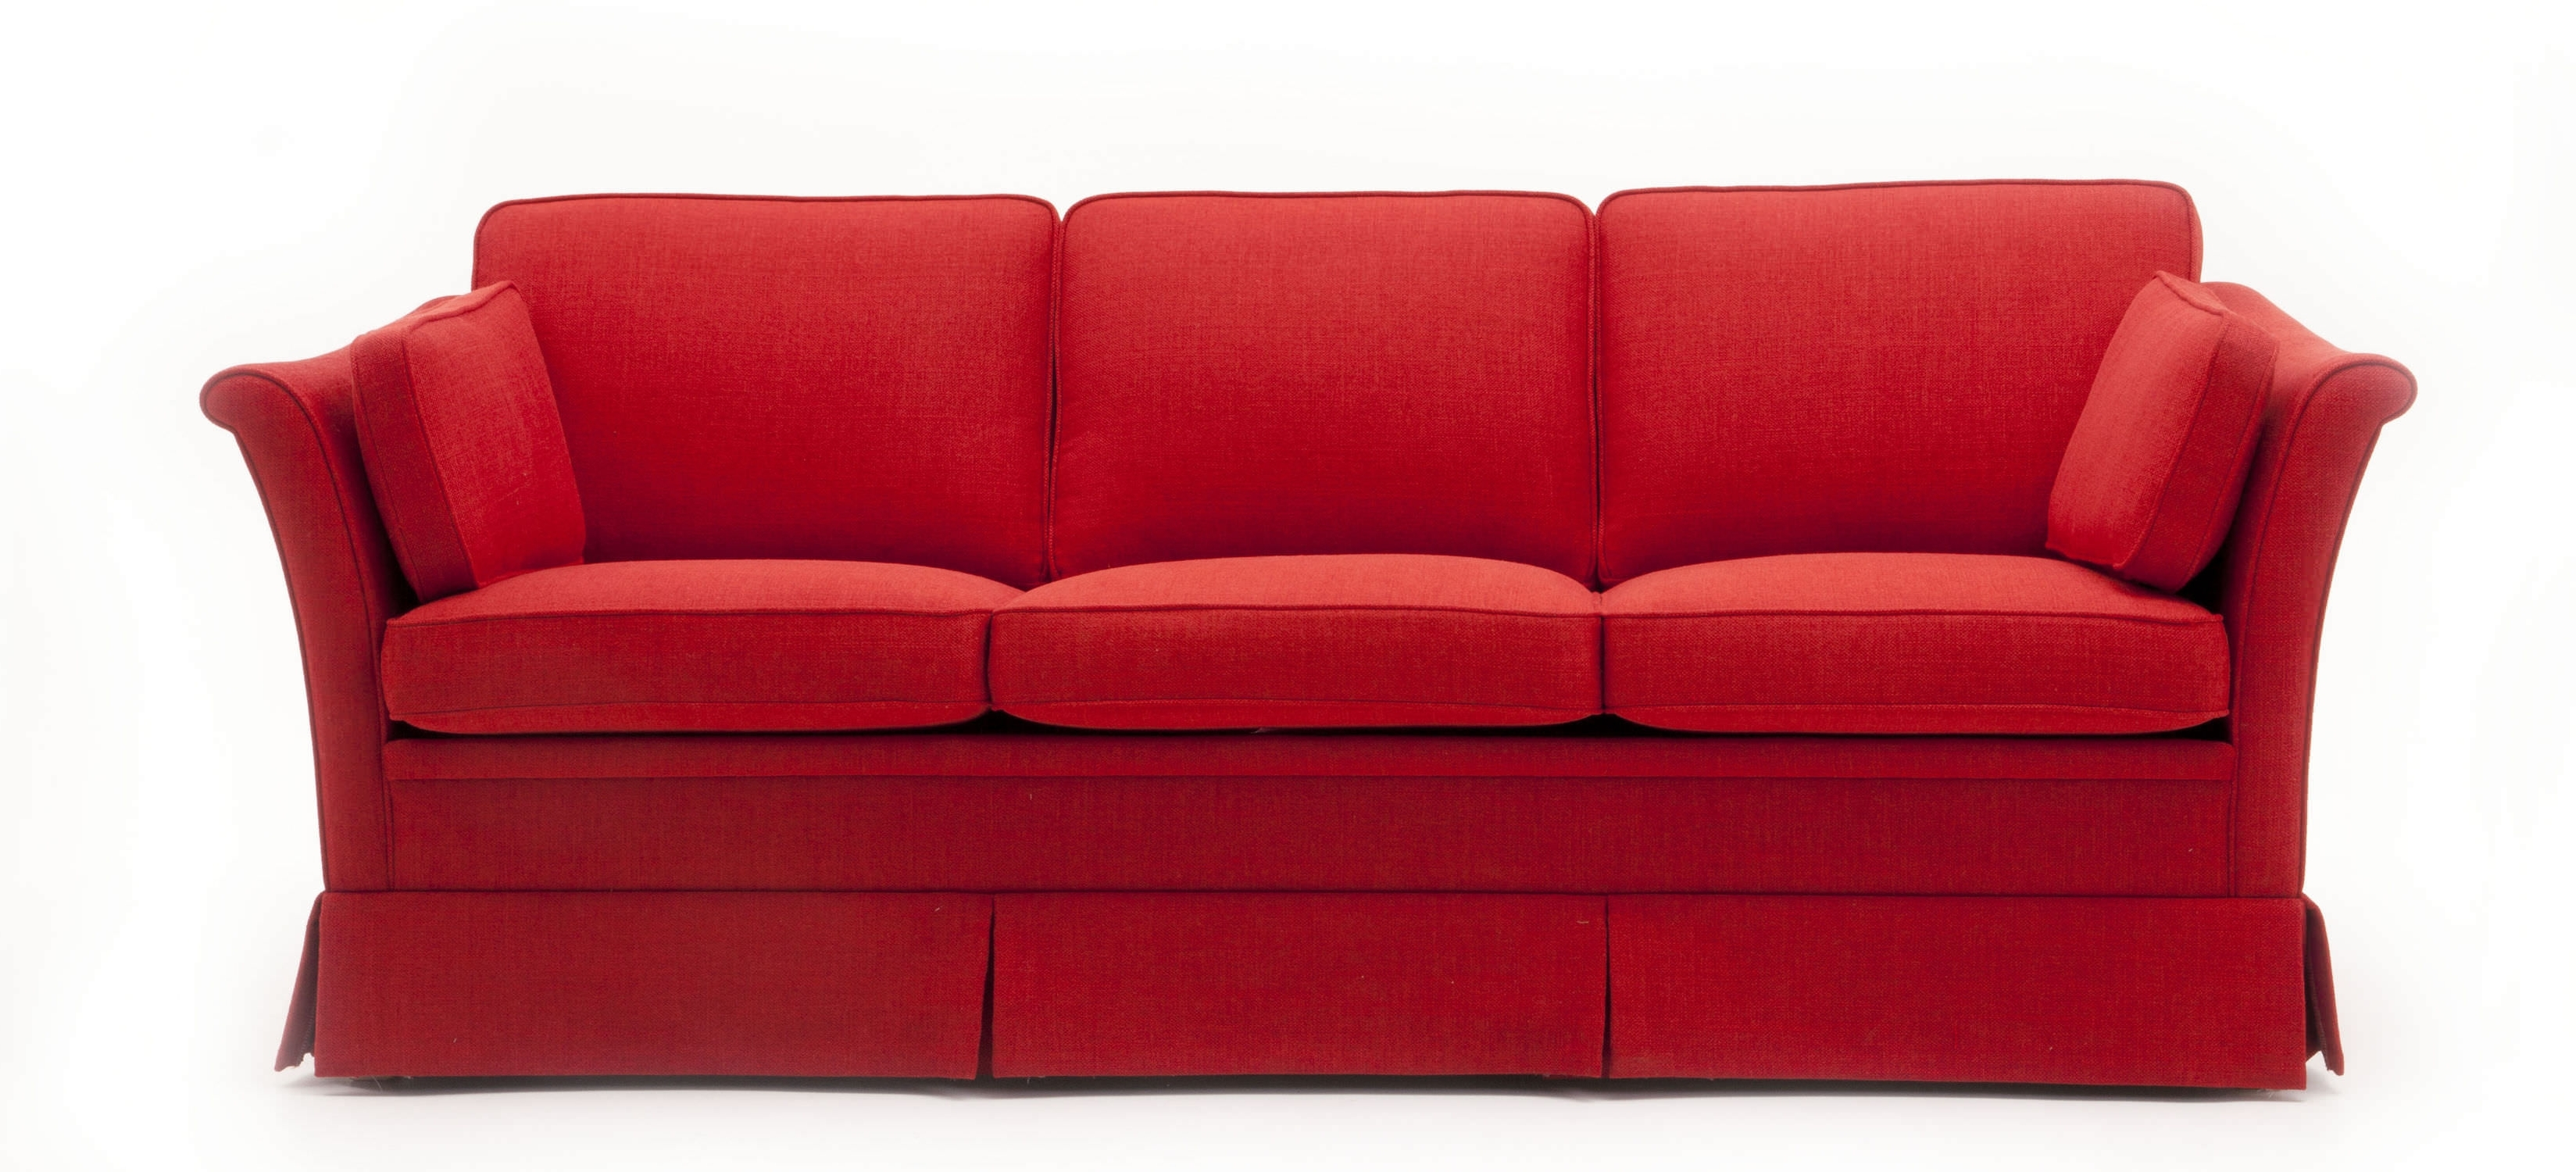 Well Known Traditional Sofa / Fabric / 3 Seater / With Removable Cover With Regard To Sofas With Removable Cover (View 17 of 20)